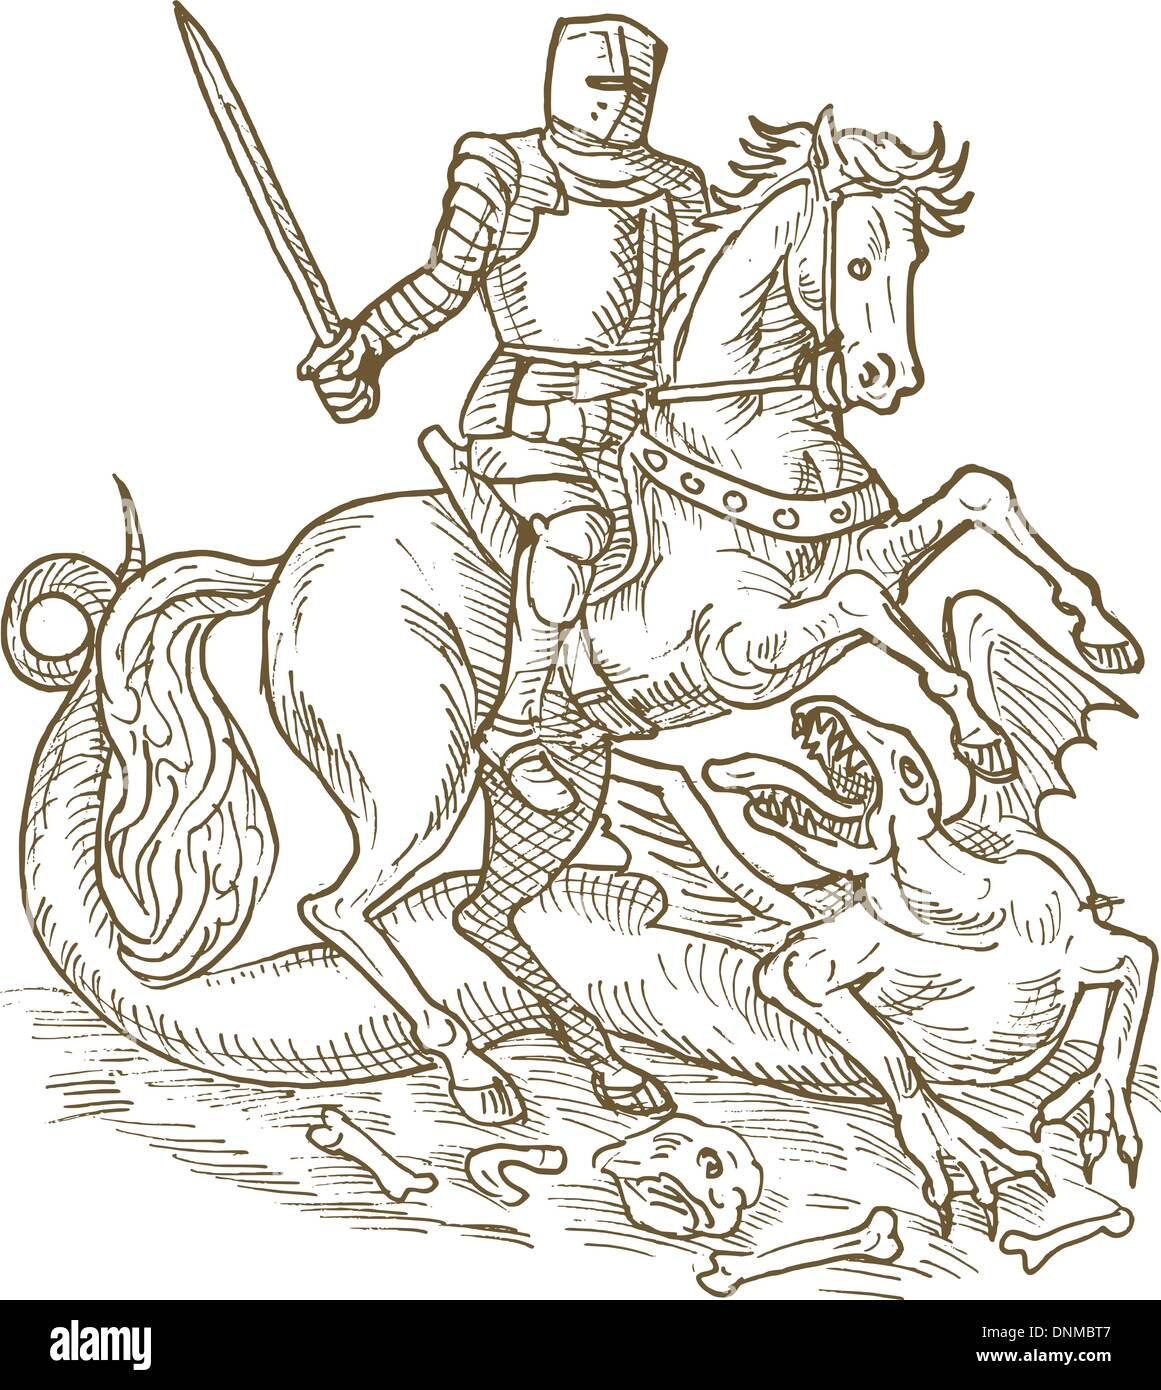 drawing of Saint George knight and the dragon done in black and white - Stock Vector